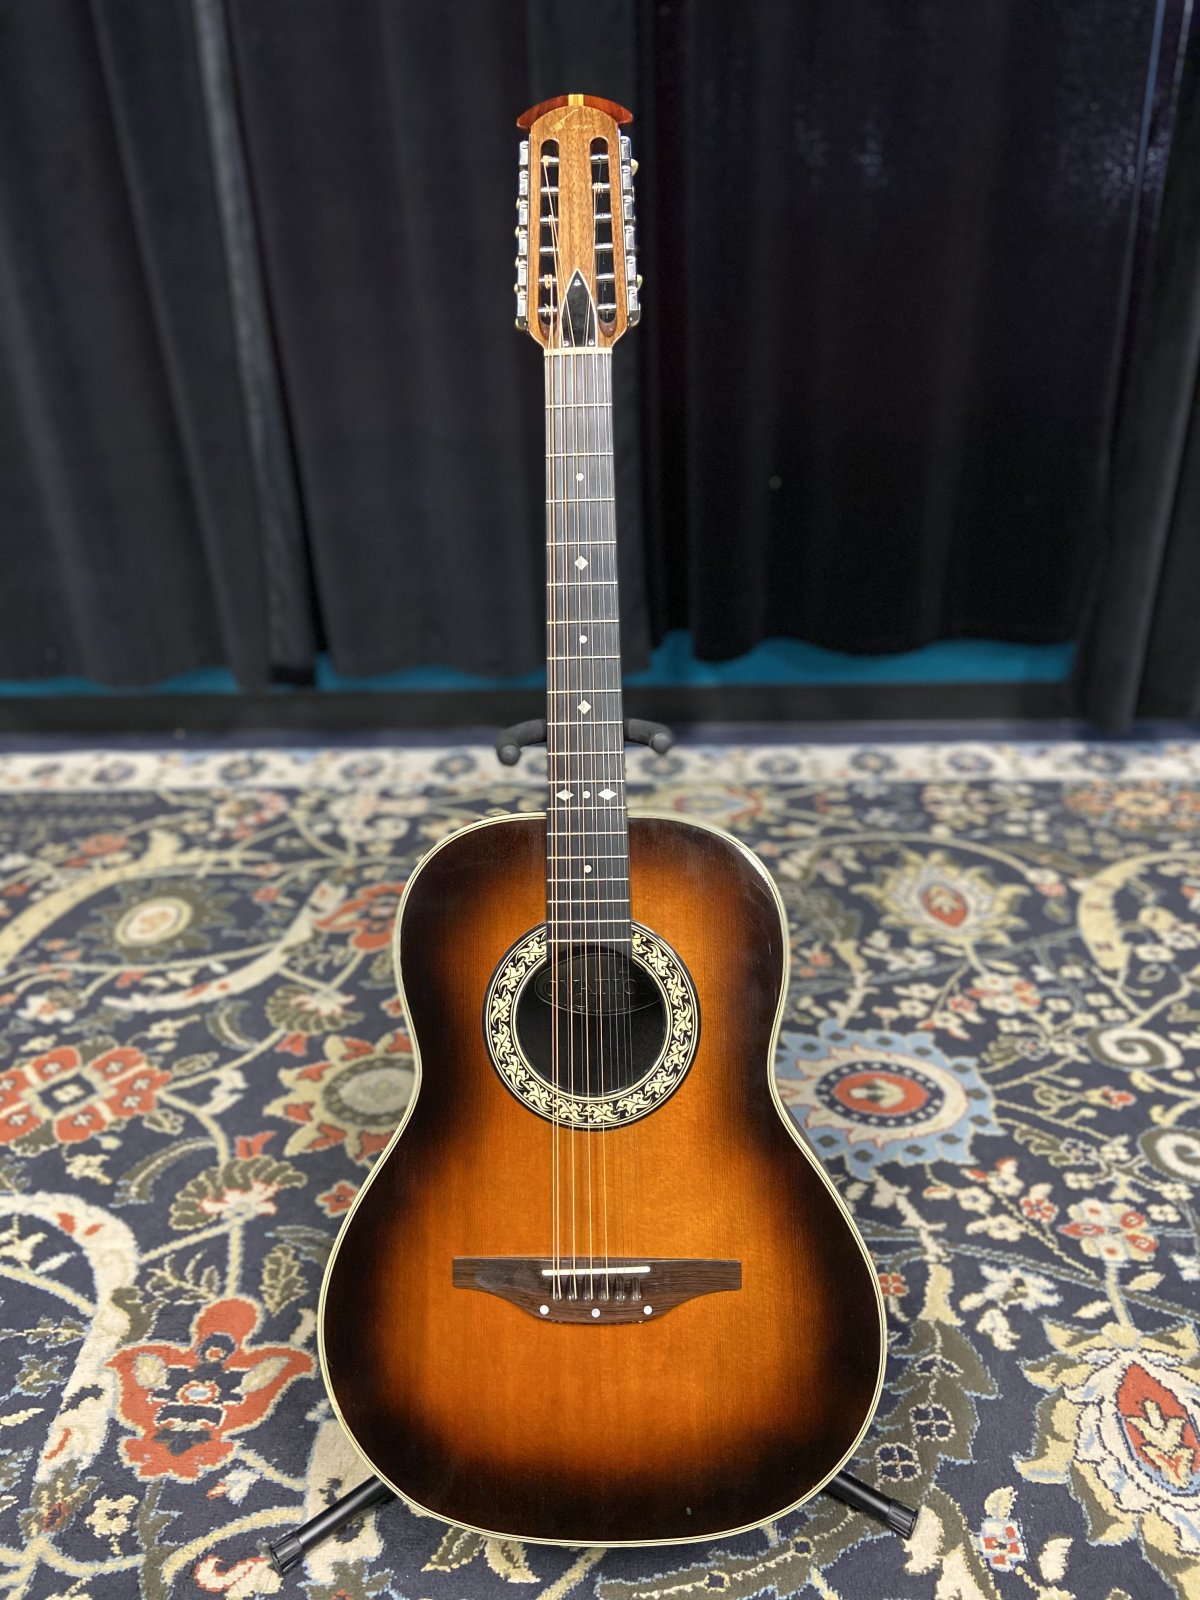 Preowned Ovation Acoustic 12 String Guitar with Case